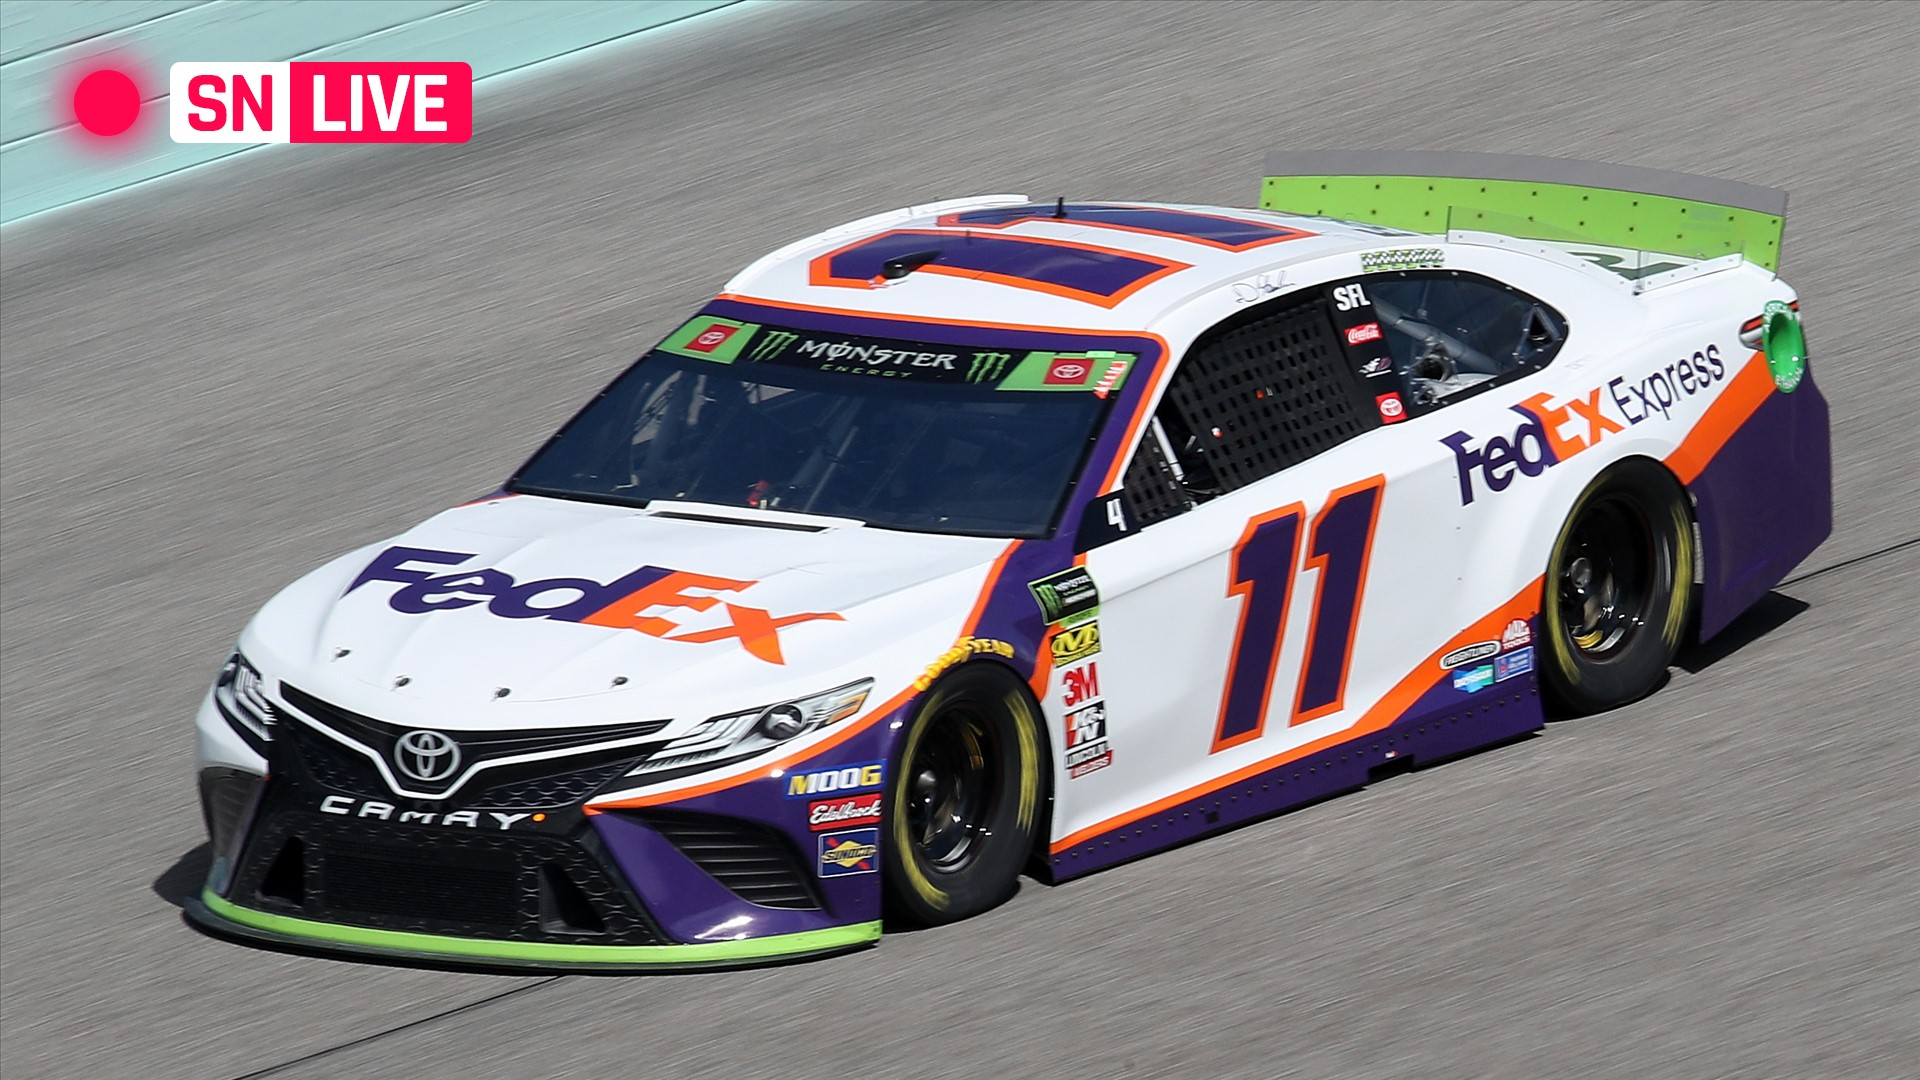 NASCAR at Homestead: Live race updates, results, highlights from 2019 Cup championship